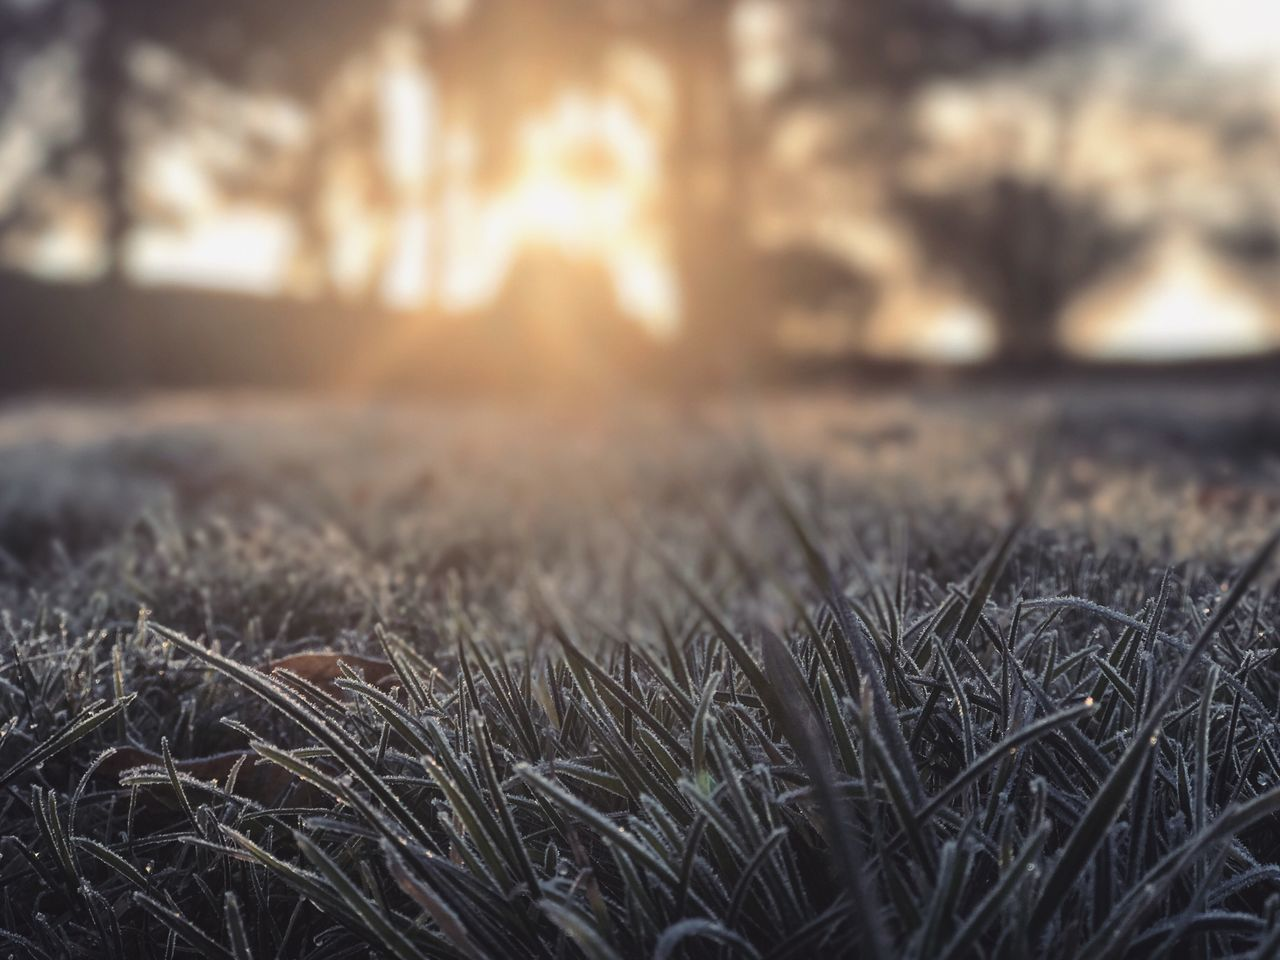 Morning frost Selective Focus Grass Field Sunset Nature Close-up Growth No People Surface Level Outdoors Plant Tranquility Beauty In Nature Freshness Day The Great Outdoors - 2017 EyeEm Awards